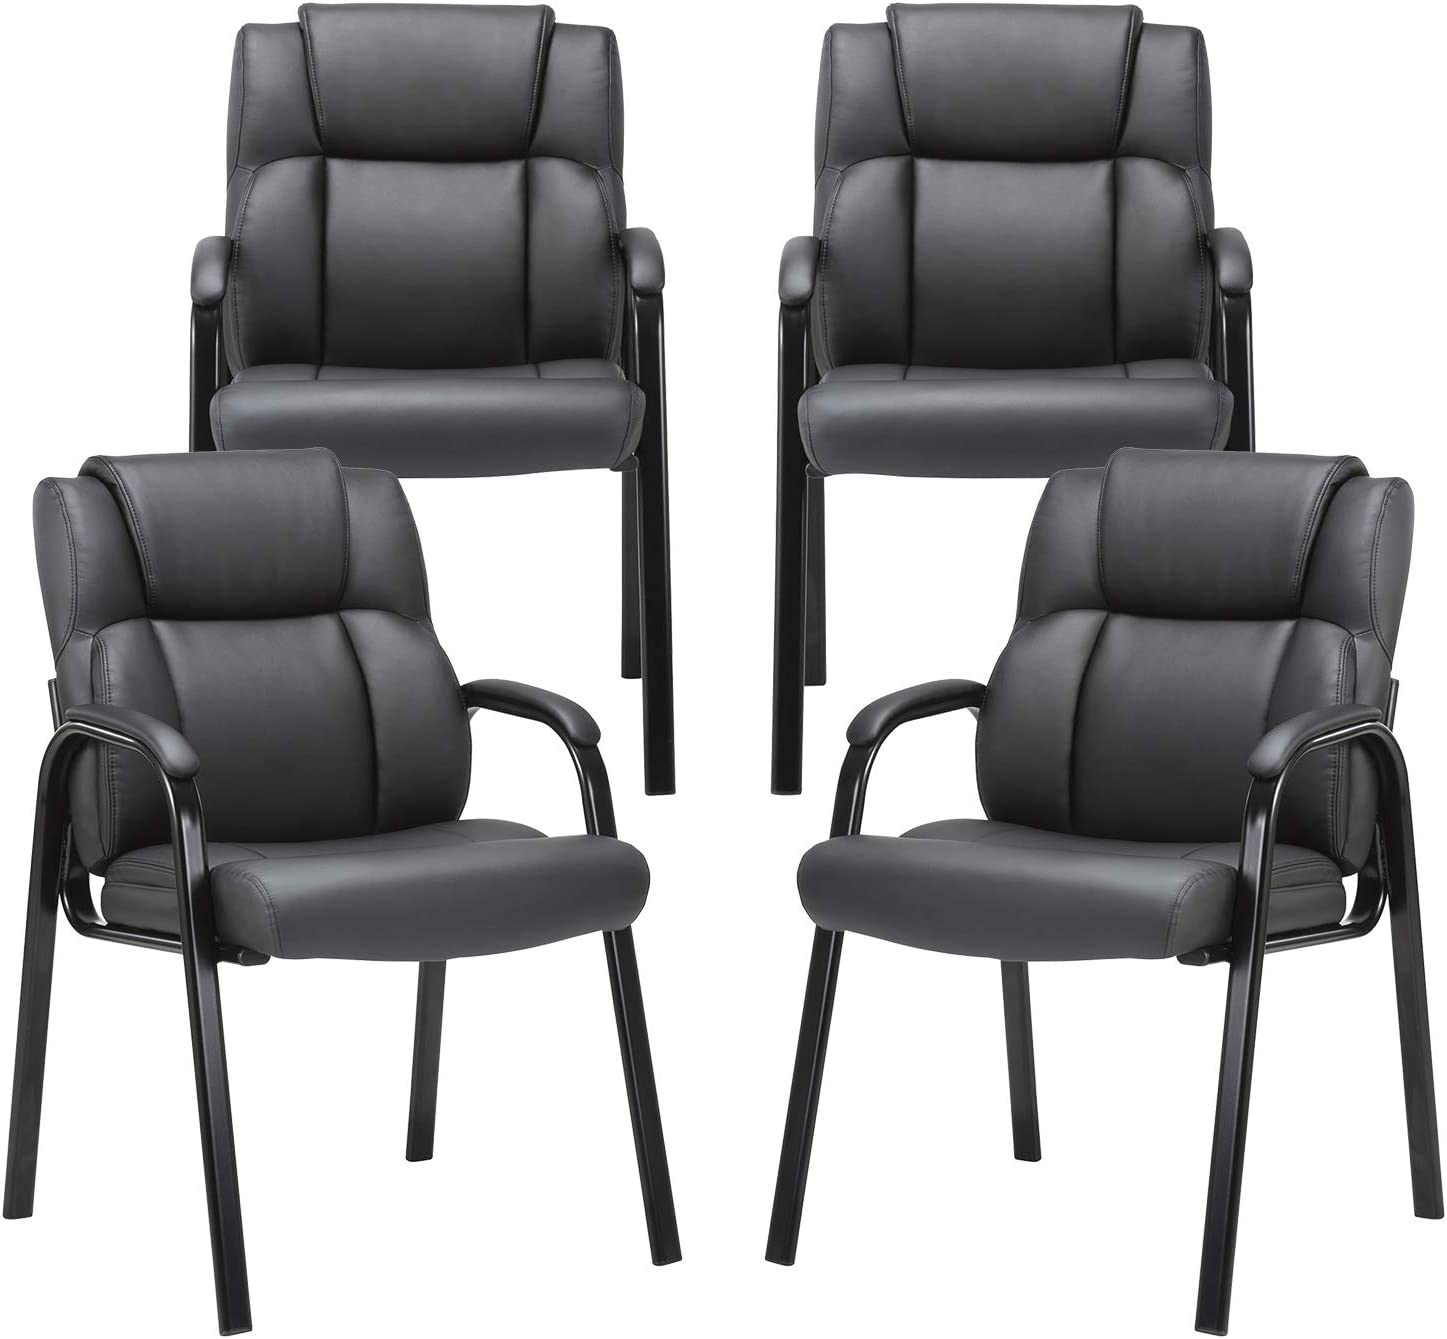 CLATINA Leather Guest Chair with Padded Arm Rest for Reception Meeting  Conference and Waiting Room Side Office Home Black 5 Pack